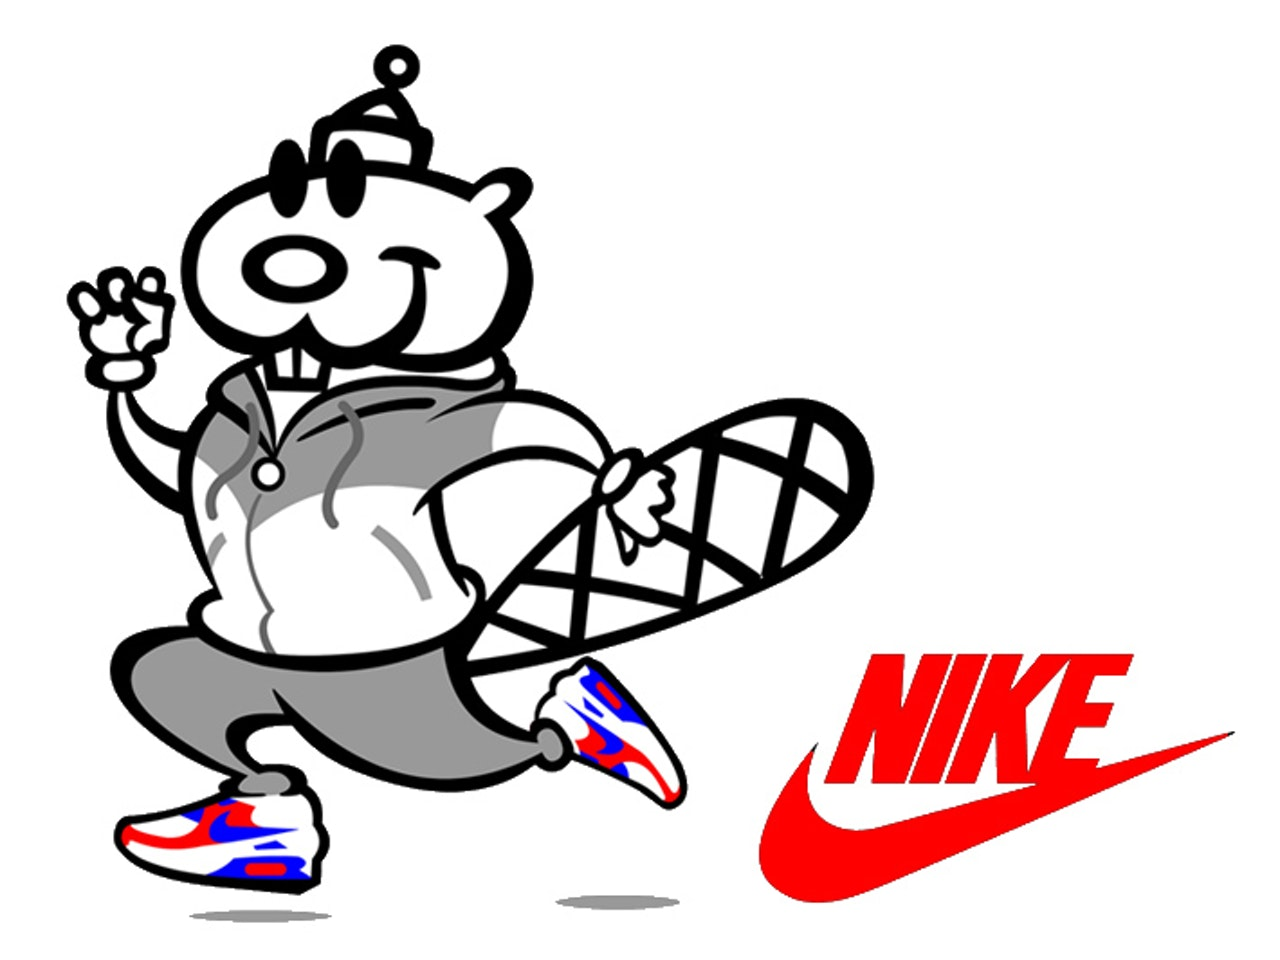 nike beaver un friendly cartoon tattoo  logo icon emoji linework simple basic emoticon mascot avatar sprite animation anthropomorphic character urban vinyl toy street art tracksuit  pictoplasma graffiti graff